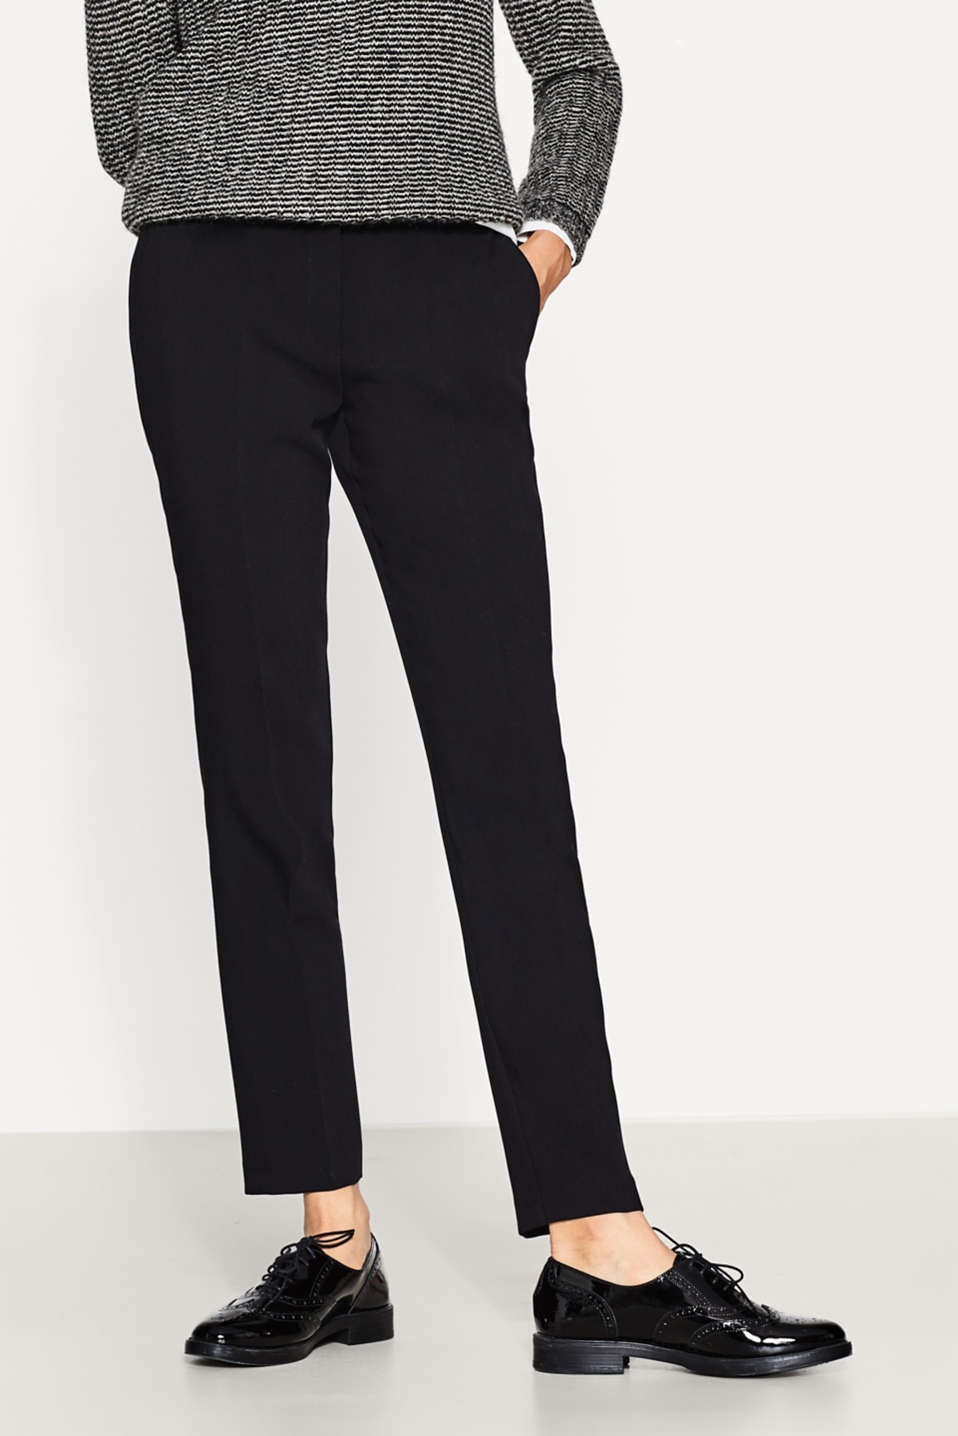 Esprit - Slim-fitting bi-stretch trousers with belt